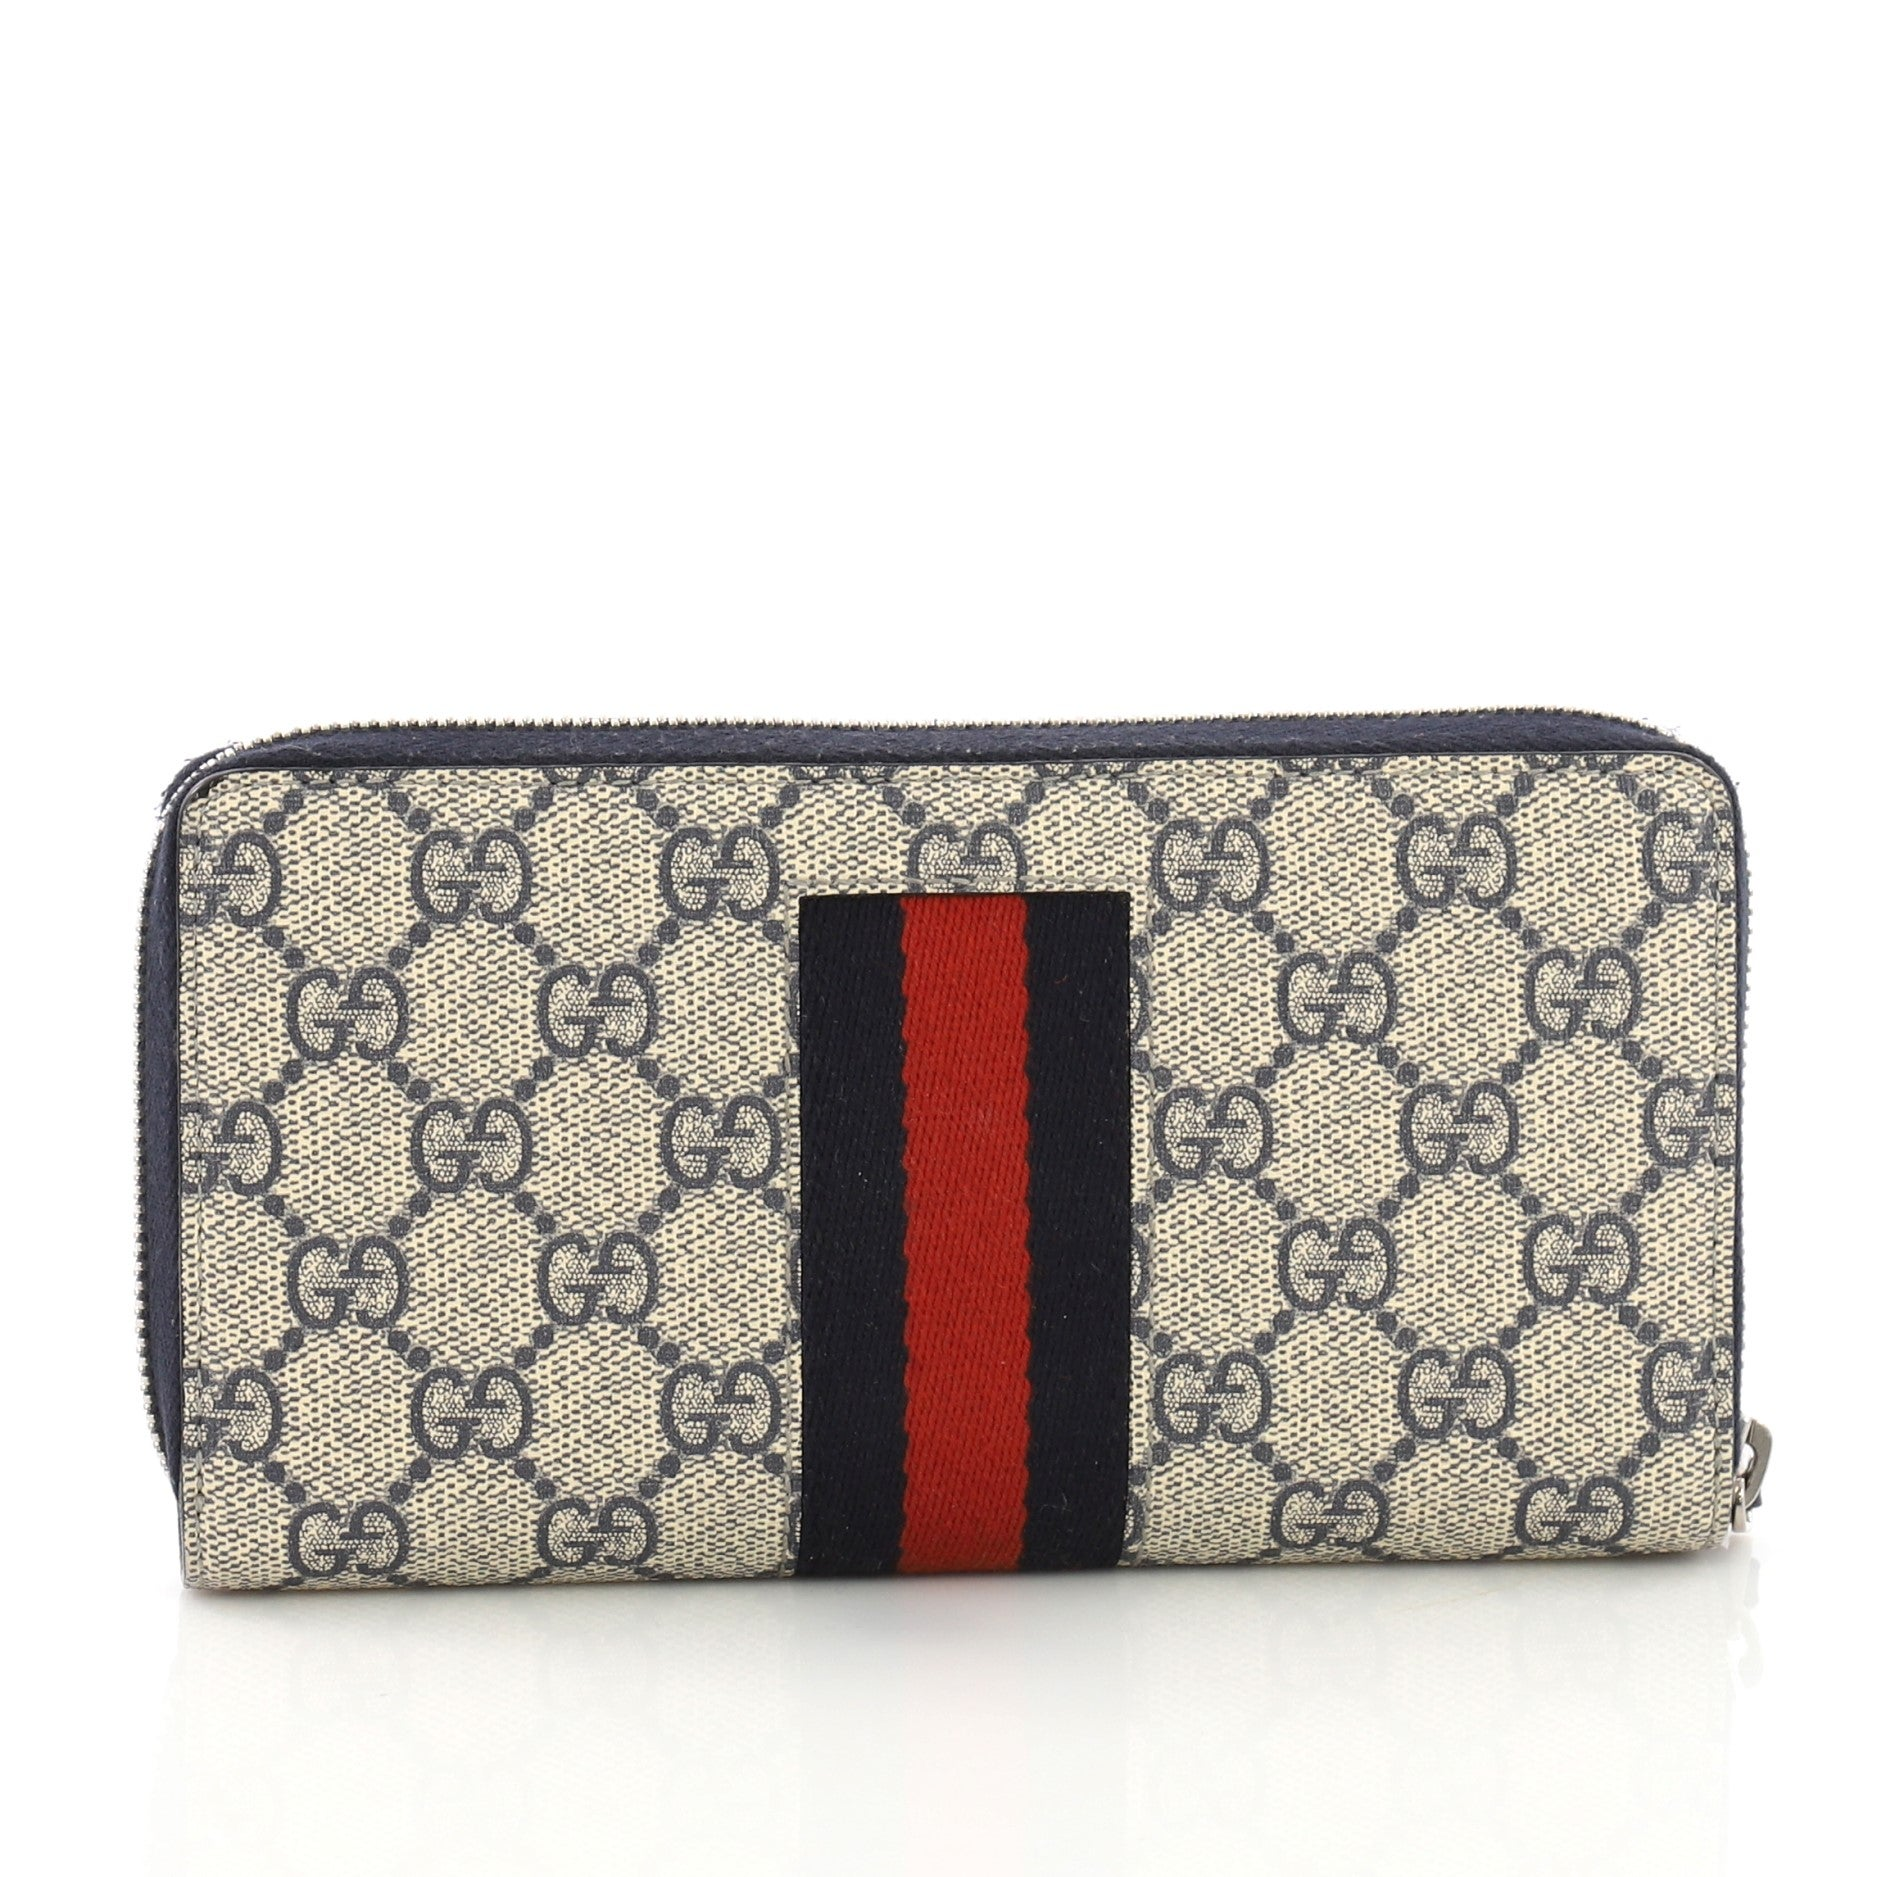 0e1367bb6772 Gucci Web Zip Around Wallet GG Coated Canvas at 1stdibs